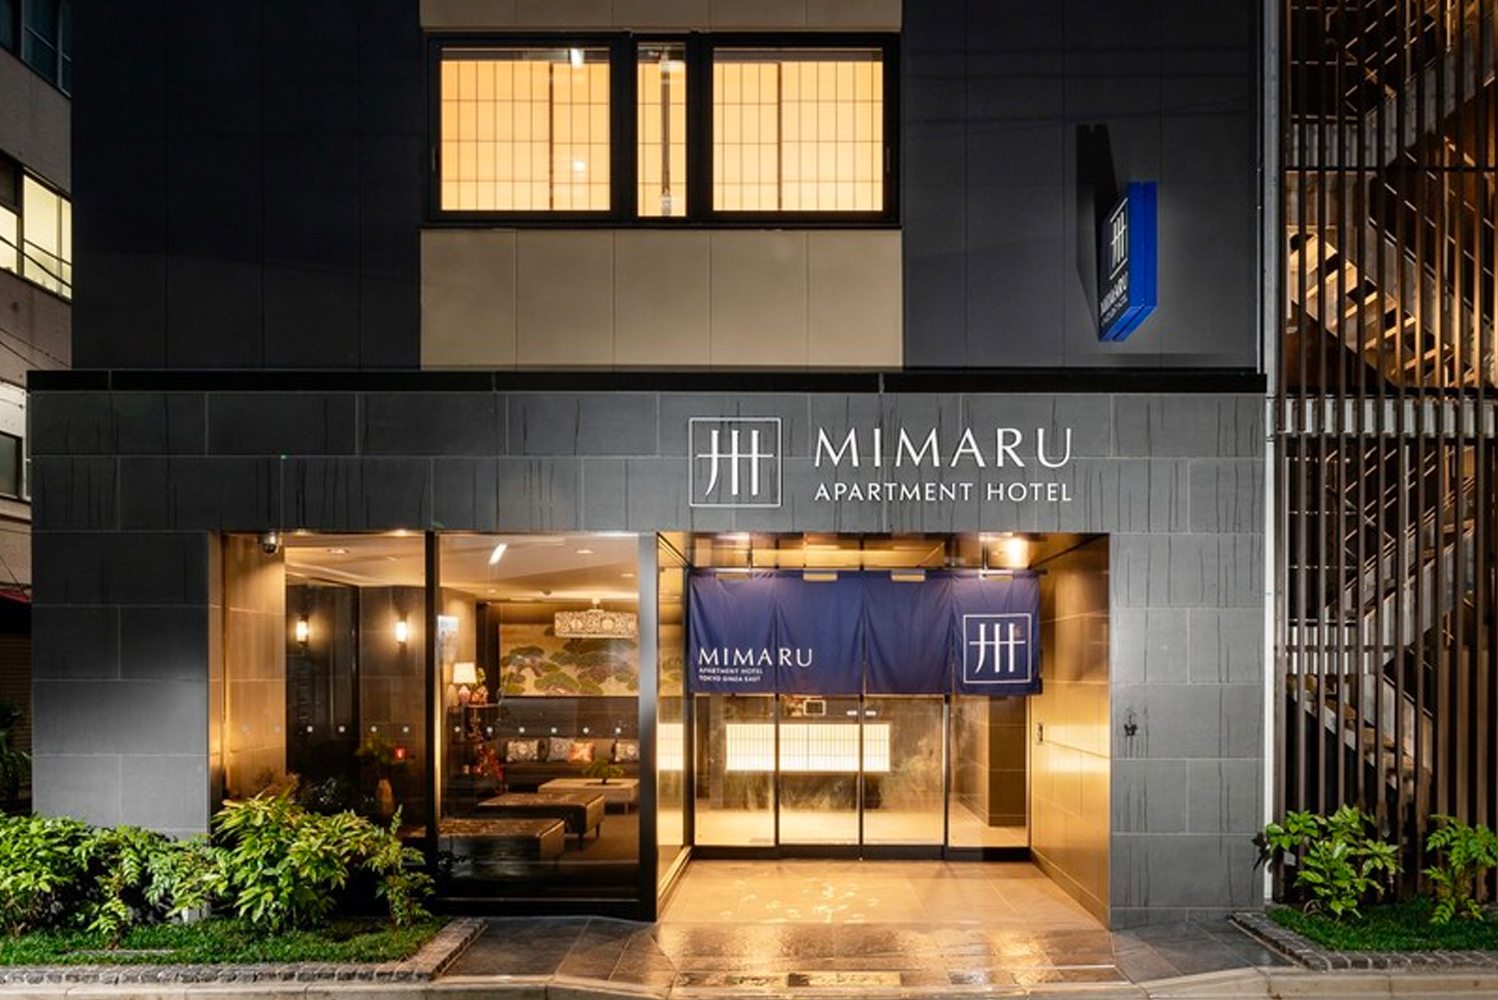 Cosmos Hotel Management, a subsidiary of Daiwa House Group, opened Mimaru Tokyo Ginza East as the first Apartment Hotel Mimaru facility.